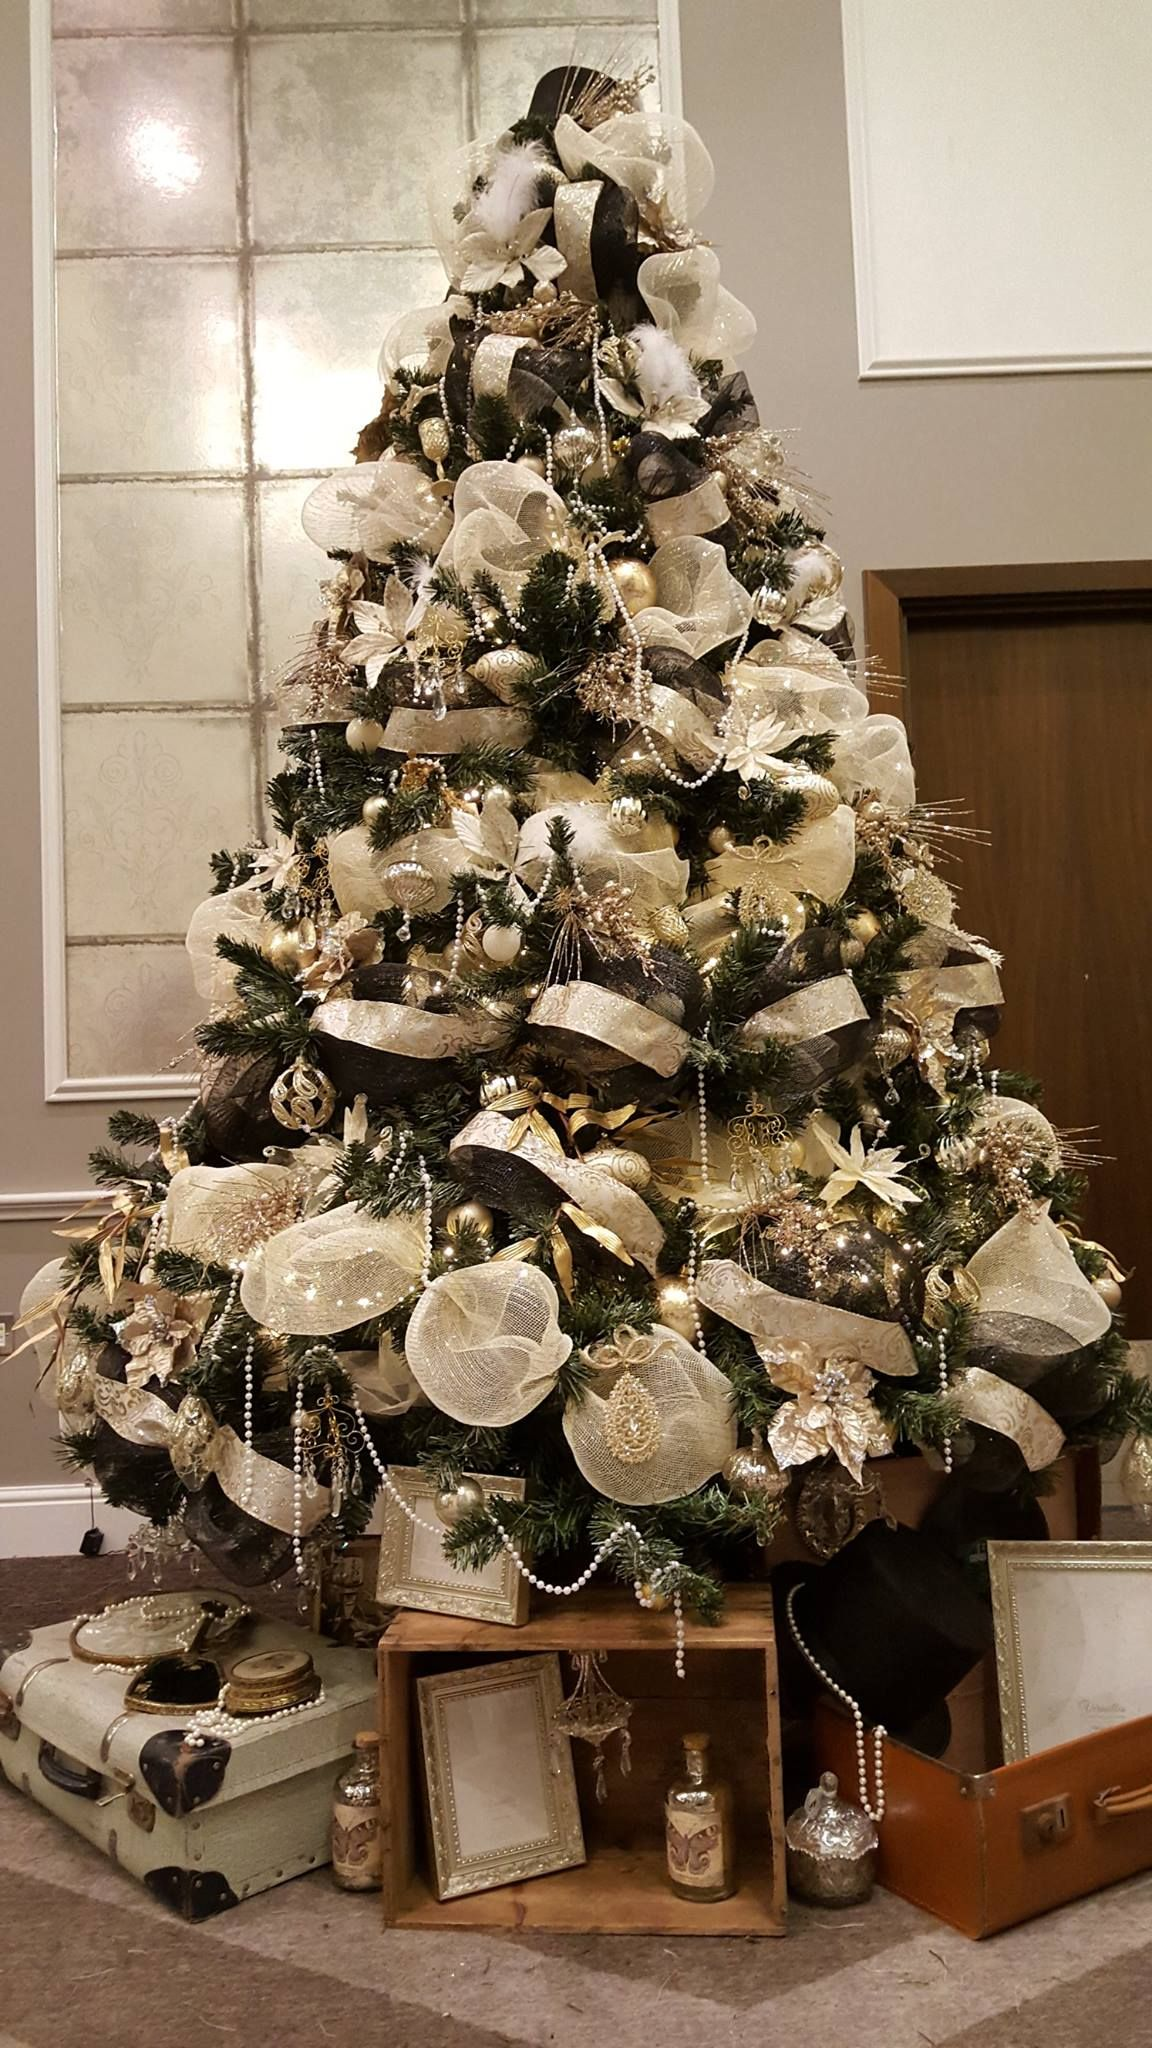 Christmas Tree Hire Luxury Christmas Tree Designs London Uk Christmas Tree Design Luxury Christmas Tree Christmas Venue